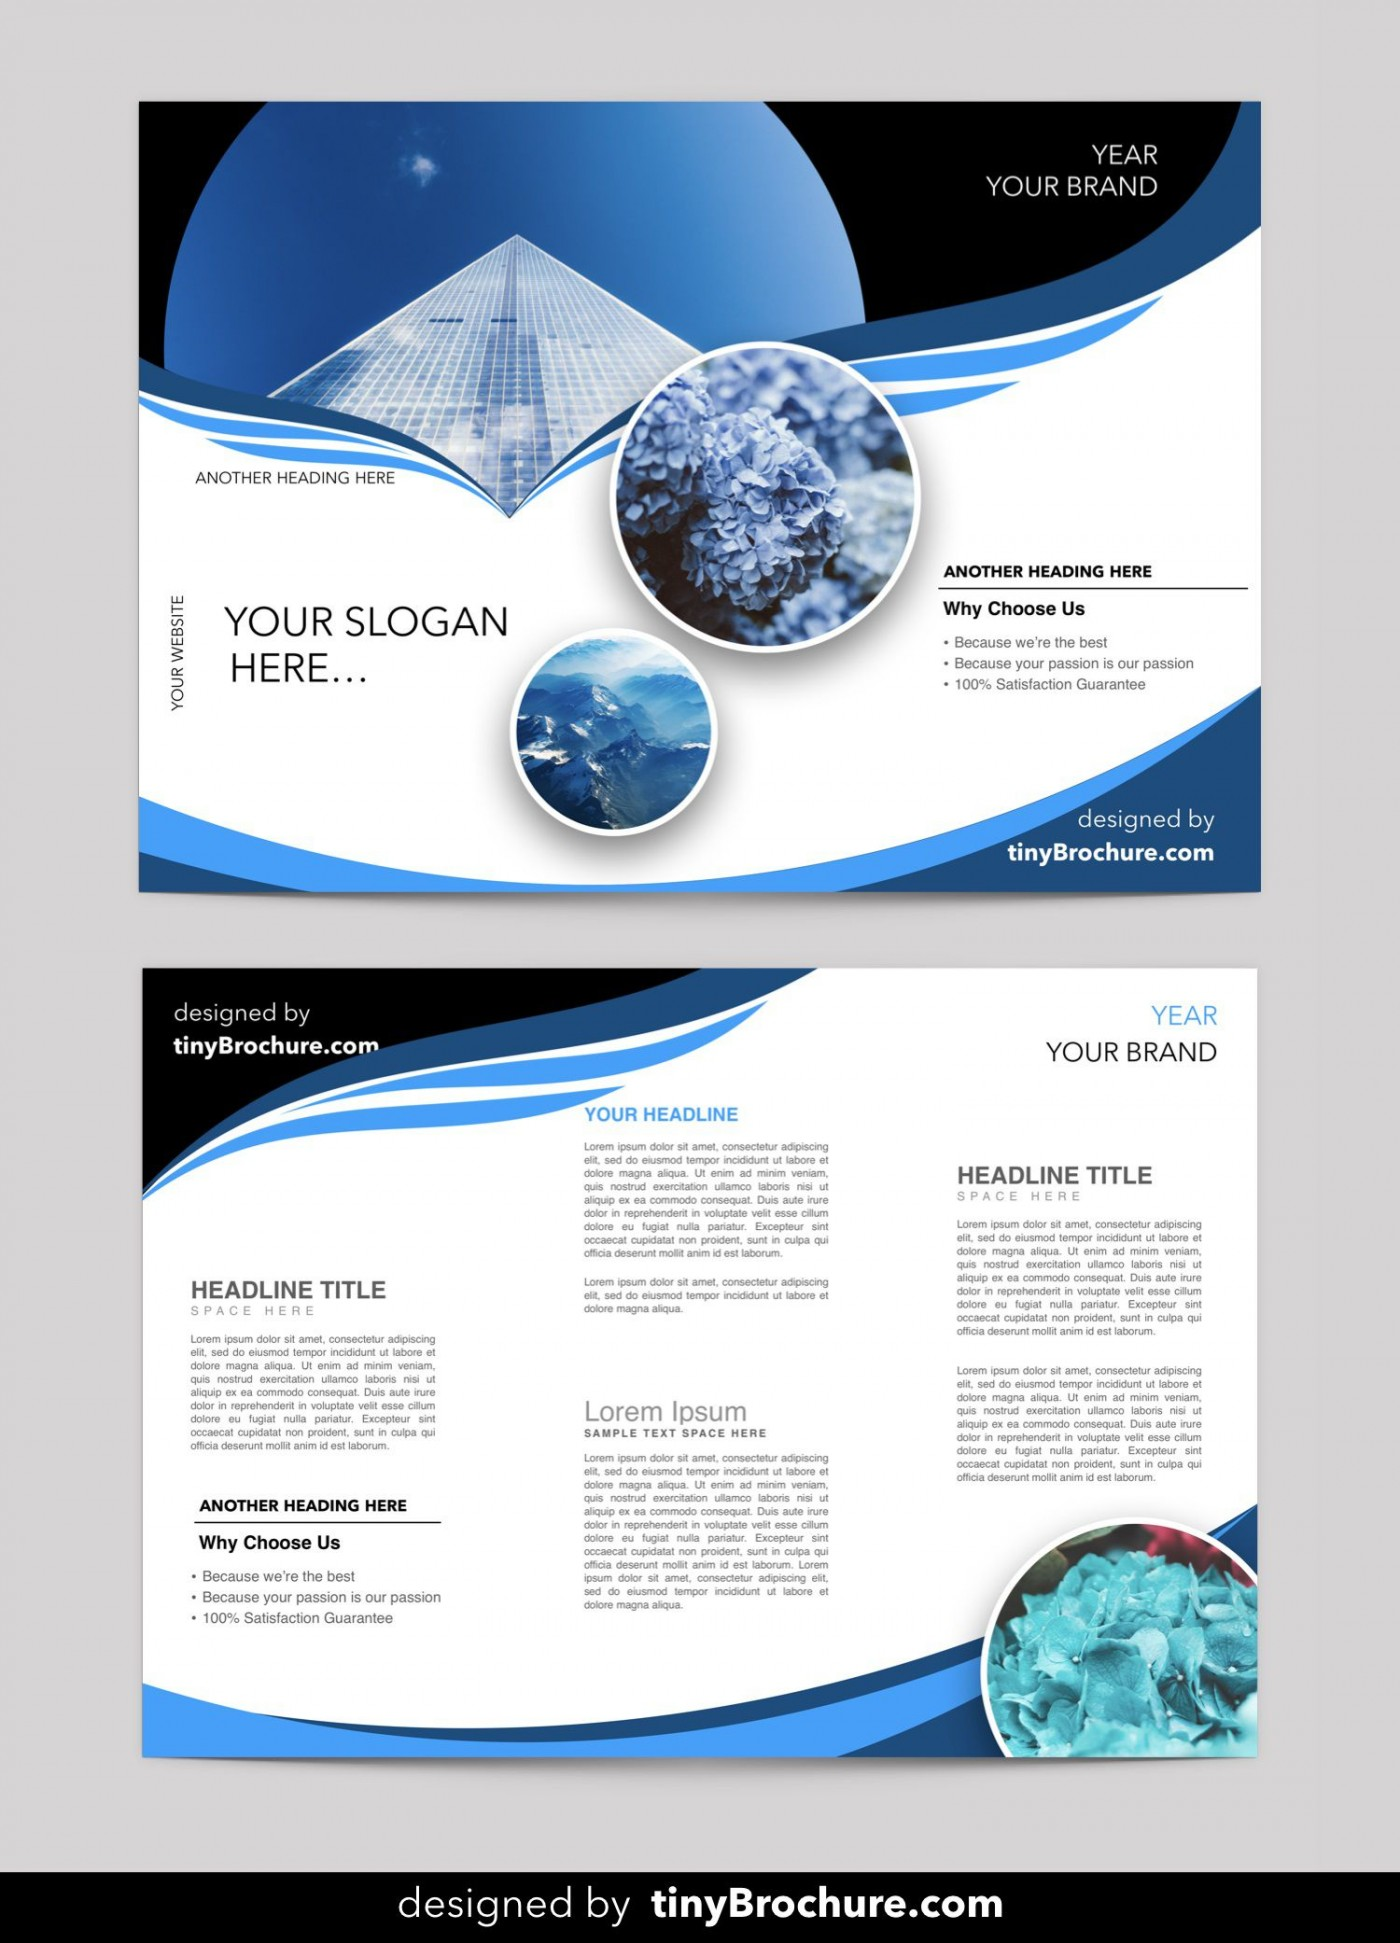 002 Dreaded Brochure Template Free Download Design  For Word 2010 Microsoft Ppt1400